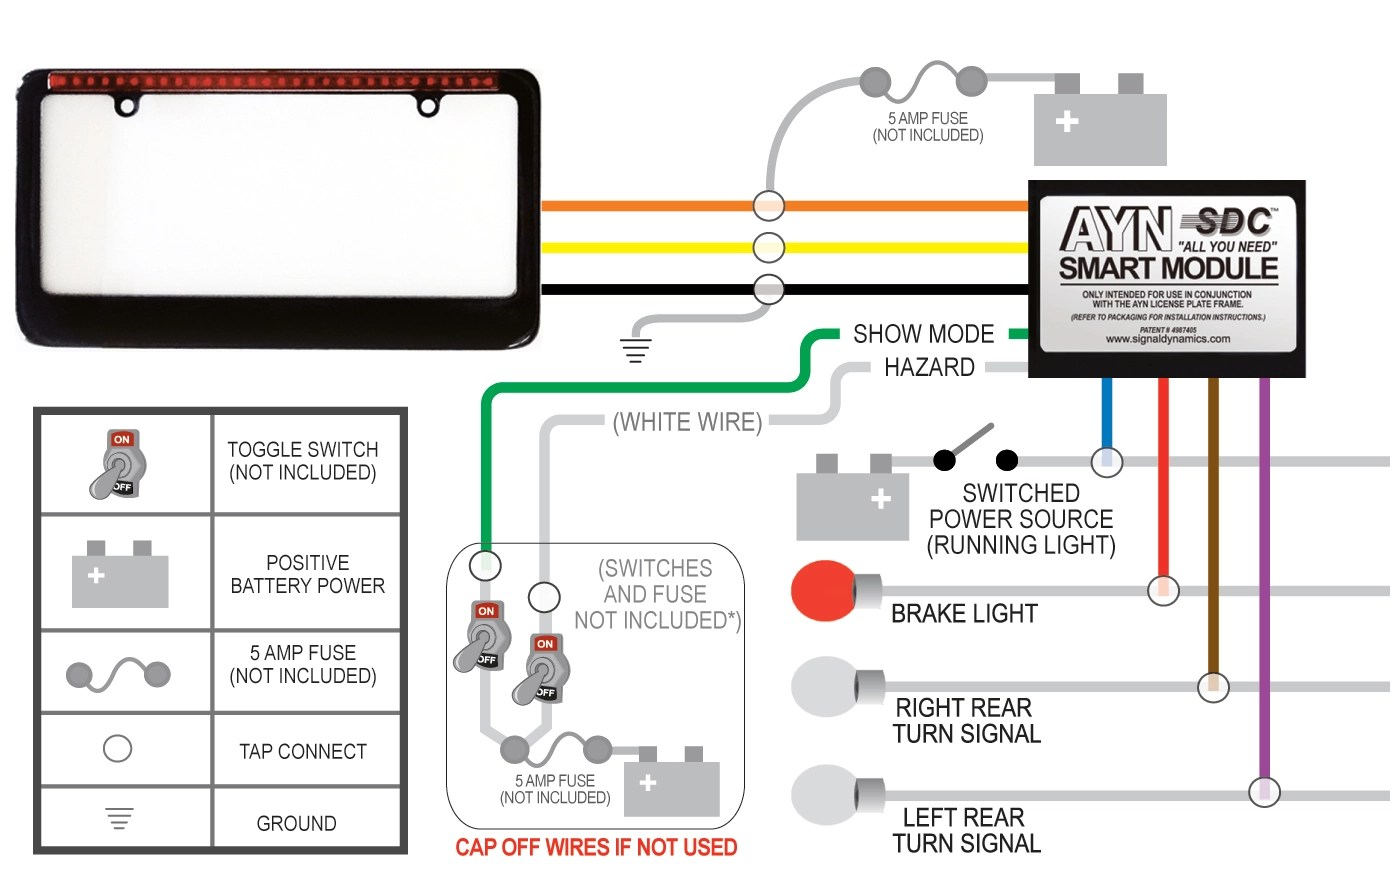 Sound Off Flasher Wiring Diagram Auto Electrical Soundoff Signal Safety Vision